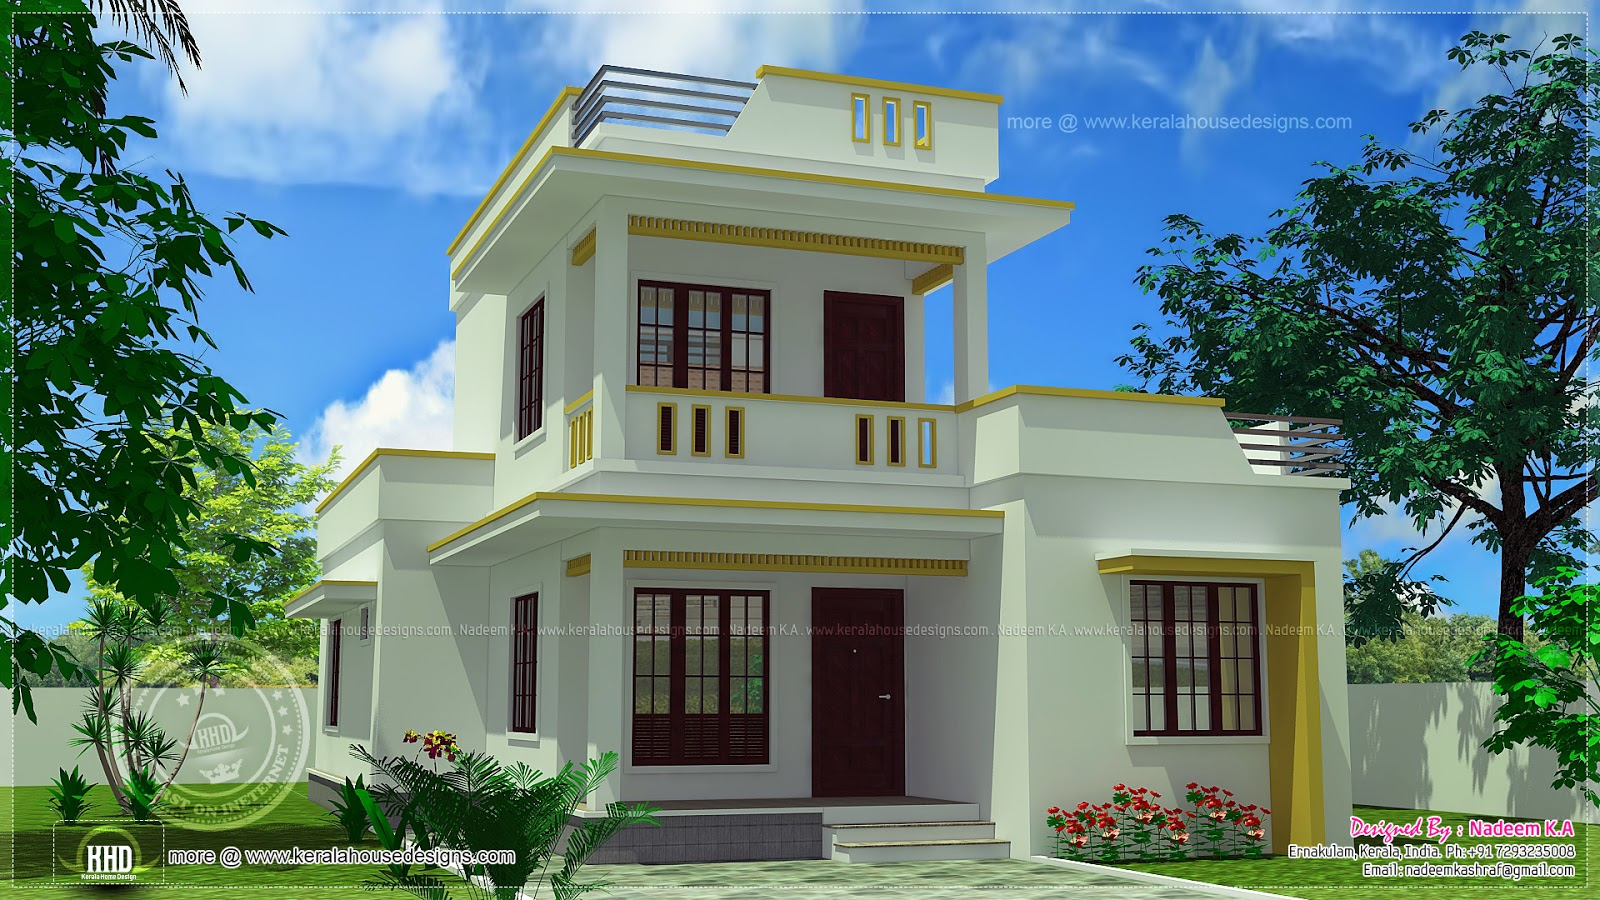 Simple flat roof home design in 1305 sq feet kerala home design and floor plans - Design of home ...